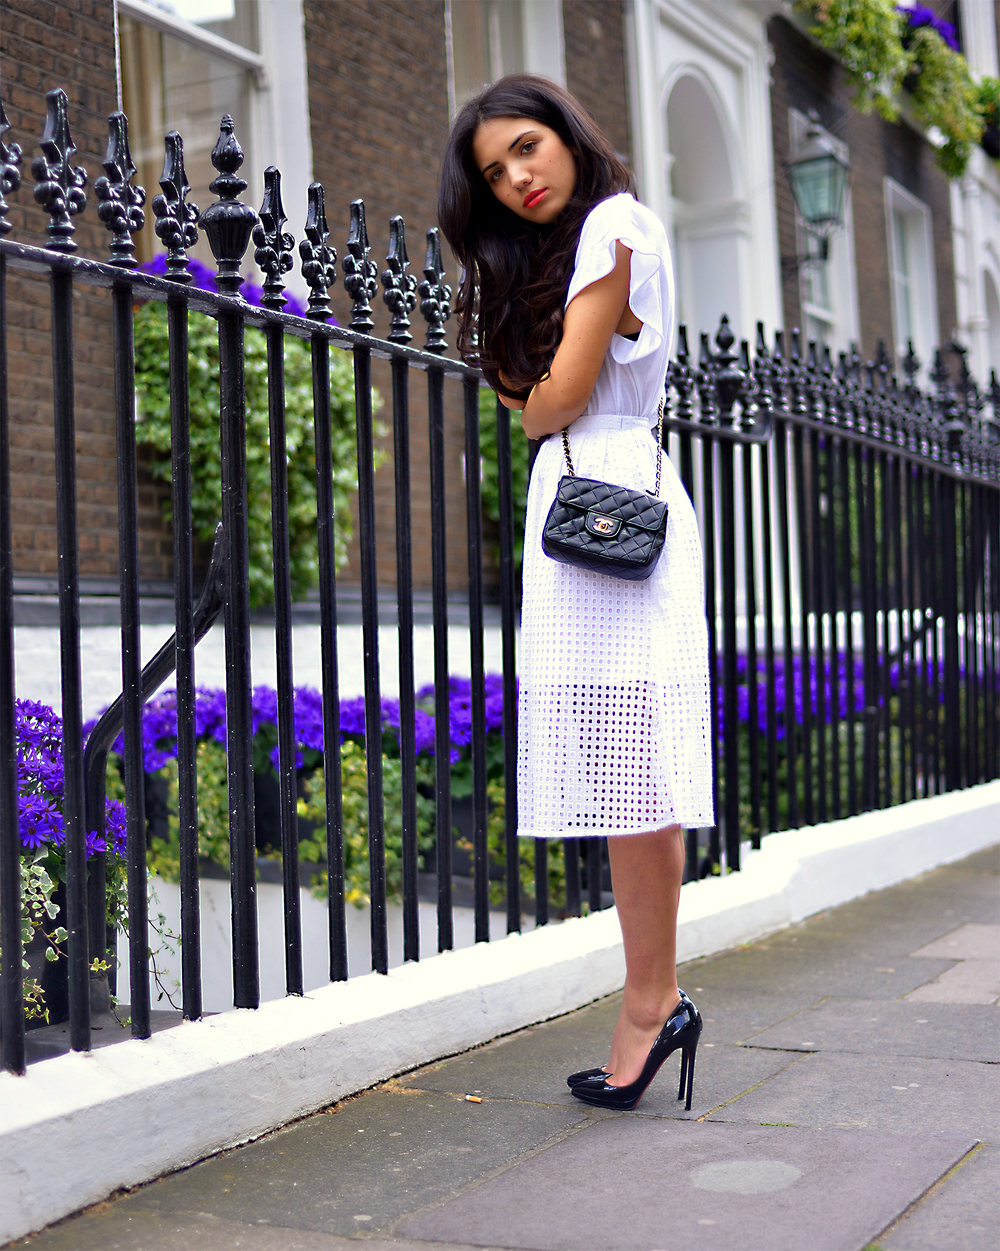 Happily walking down the streets of Marylebone wearing my new lipstick from YSL. The perfect touch to add a little bit of colour to my white outfit.Thanks to the most amazing hairdresser in London, Peter GHAZIRI , I was able to wear my new Bellami extensions and feel like a princess.